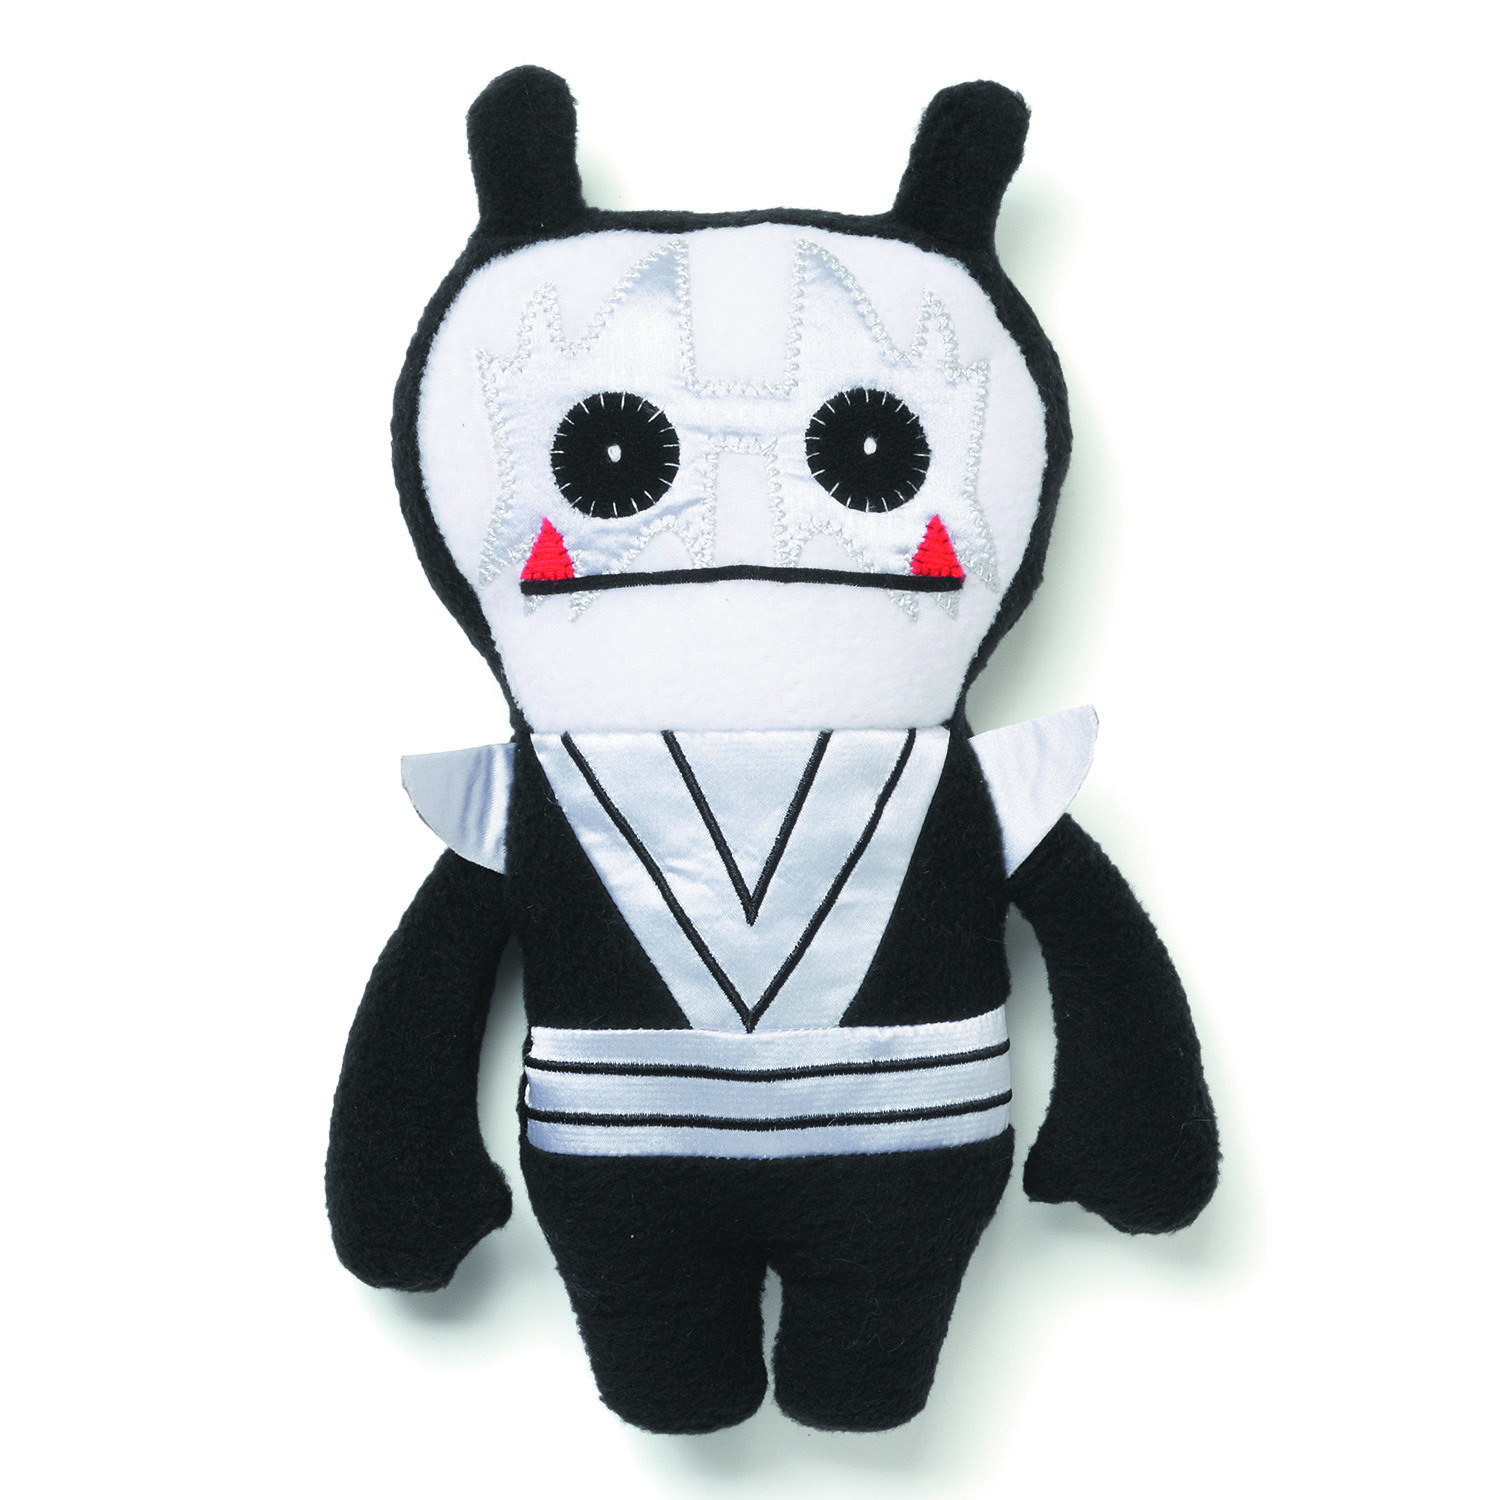 UGLYDOLL KISS WAGE SPACEMAN 11-IN PLUSH